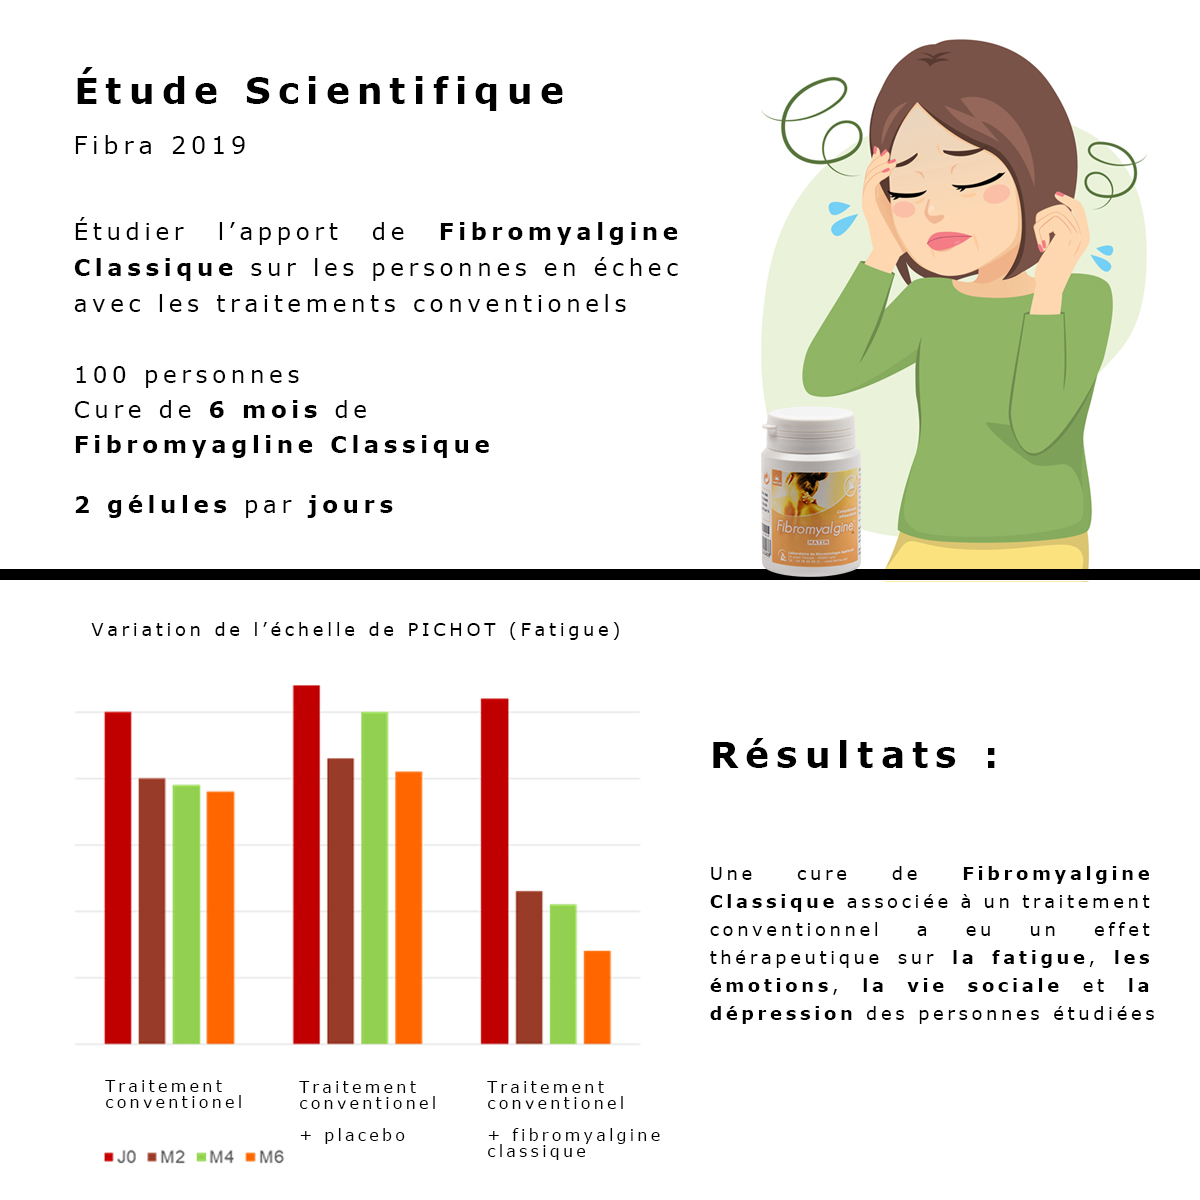 Etude scientifique fibra 2019